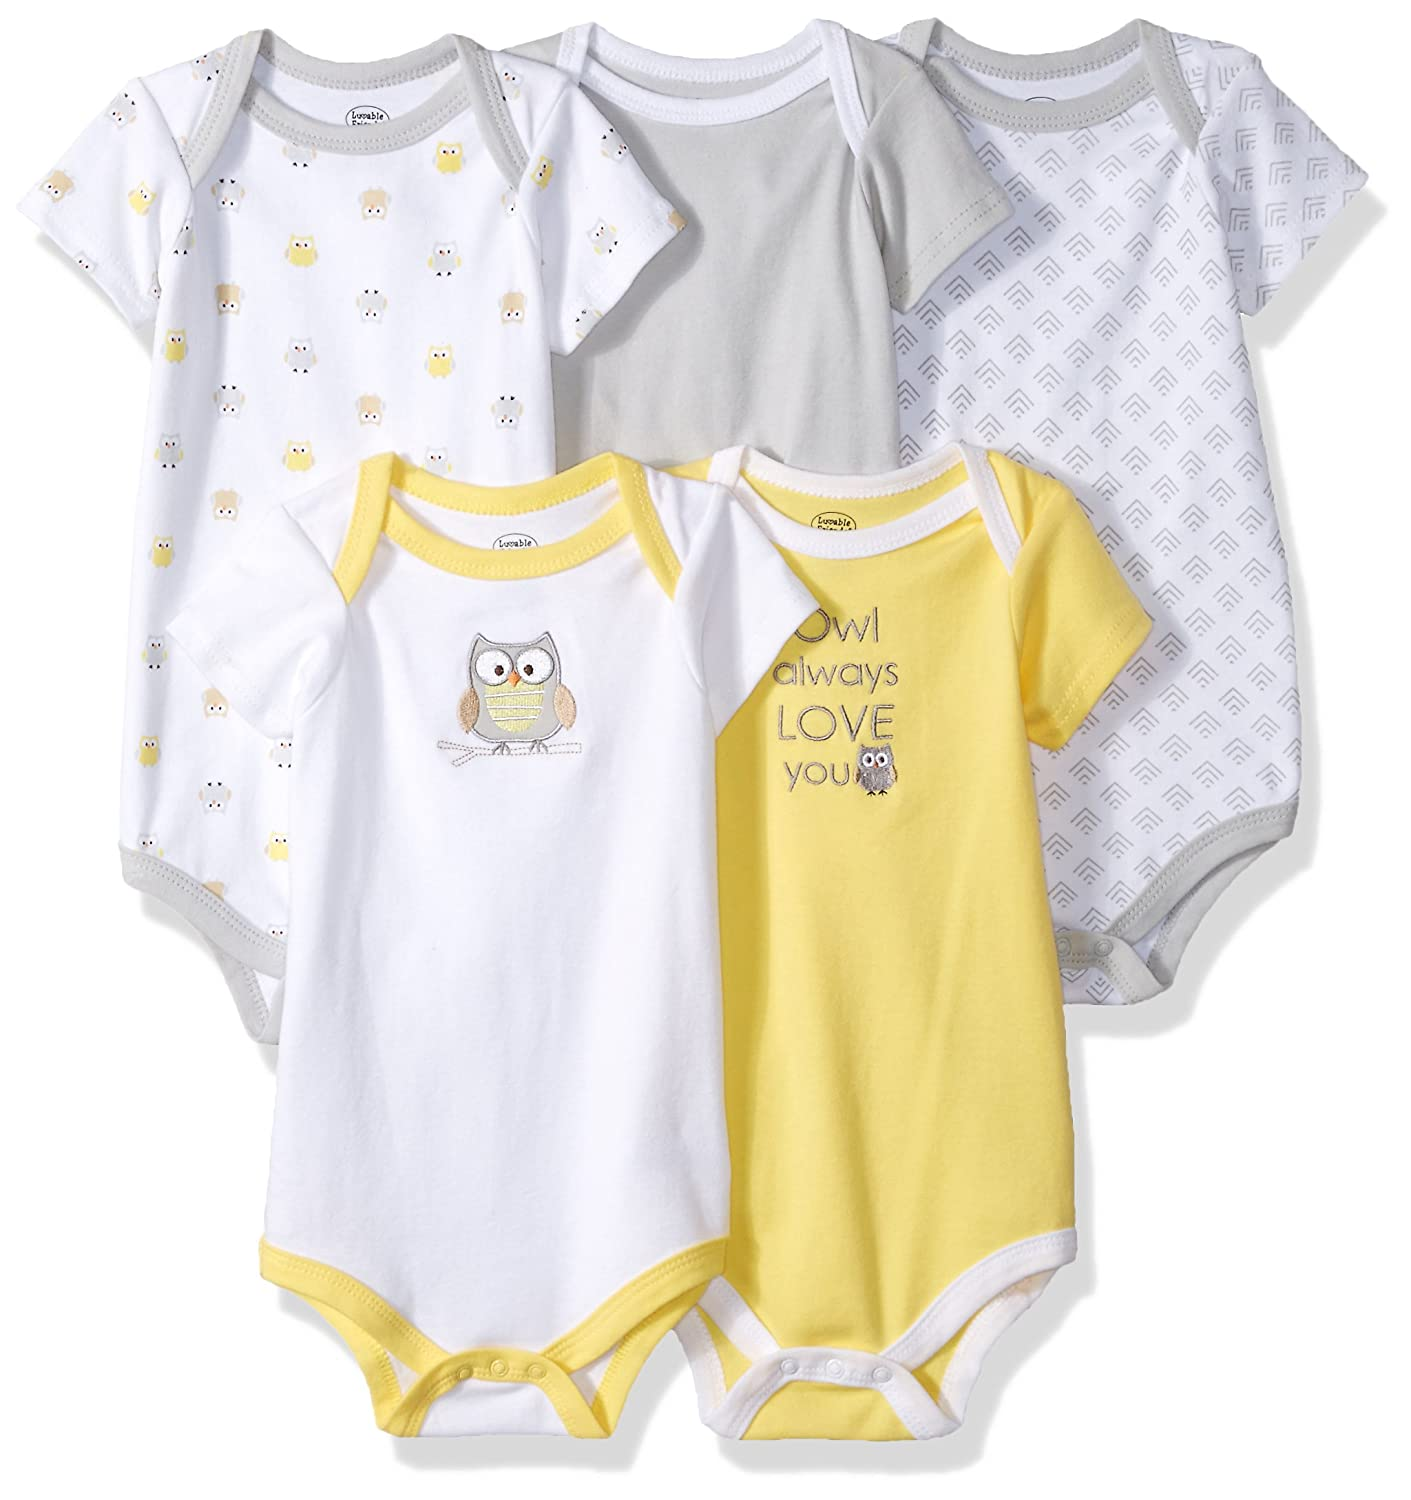 Luvable Friends Baby Infant Cotton Bodysuits, 5 Pack